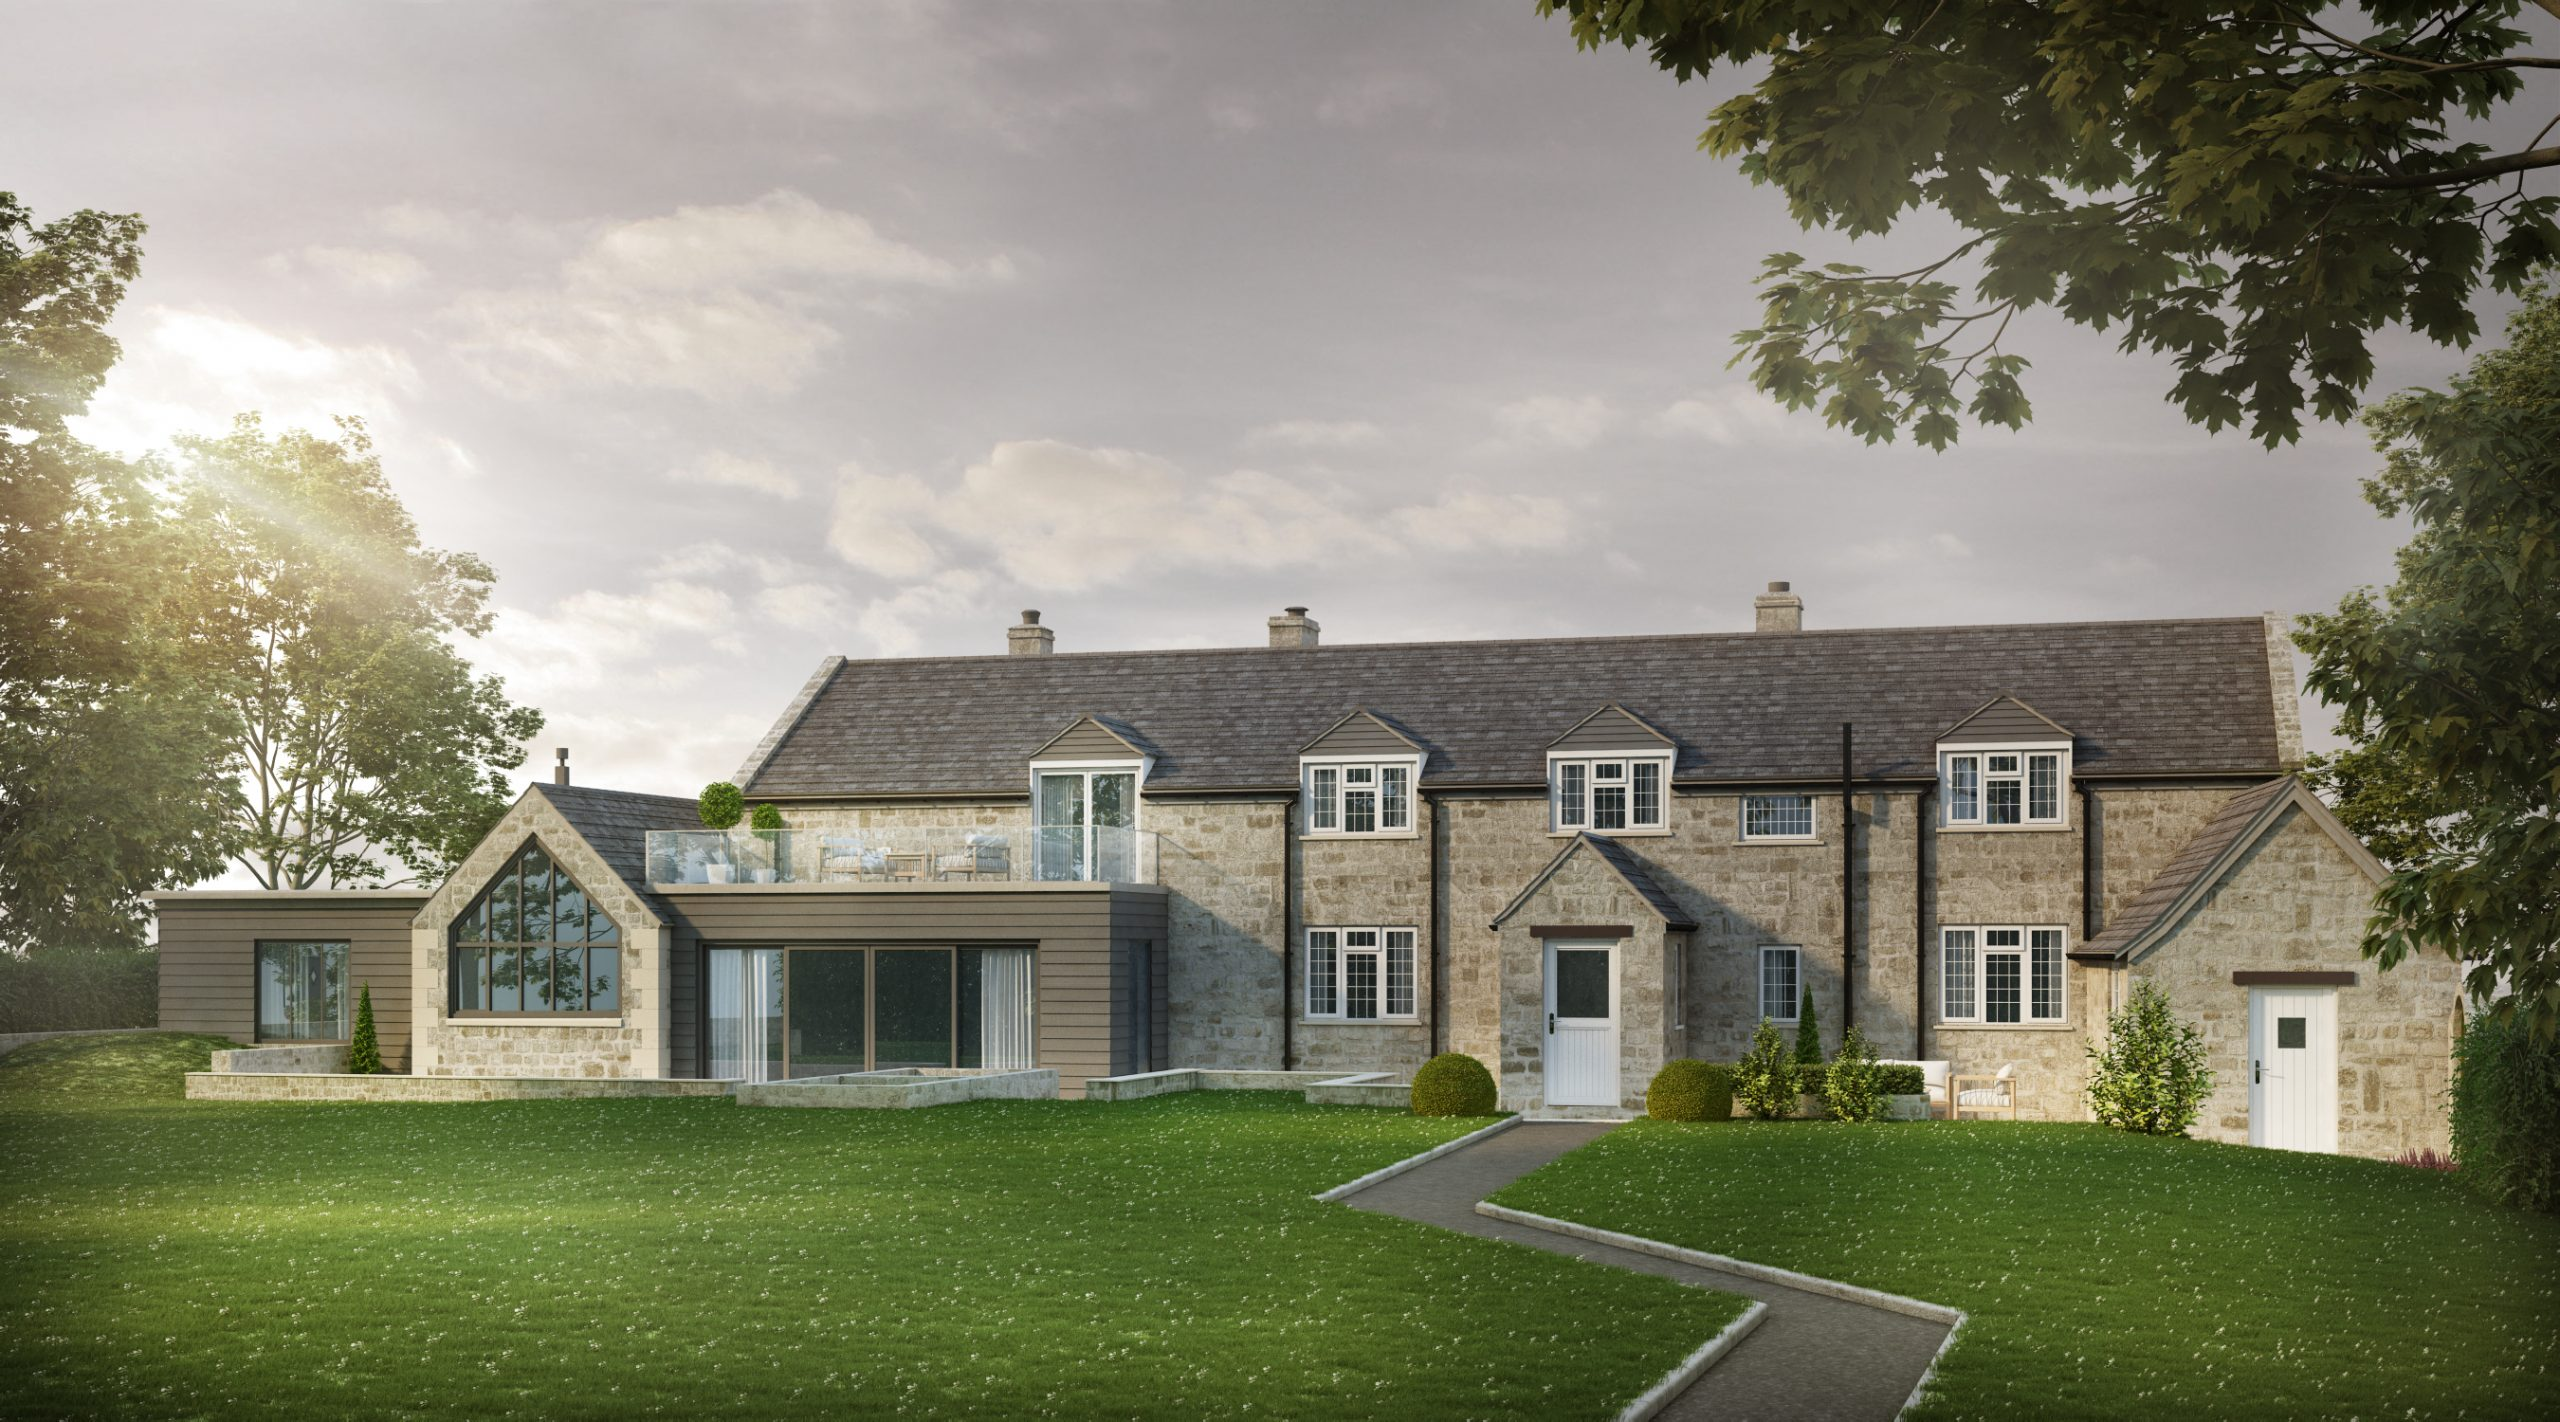 Alterations and extensions to a detached Cotswolds stone home, Cotswolds